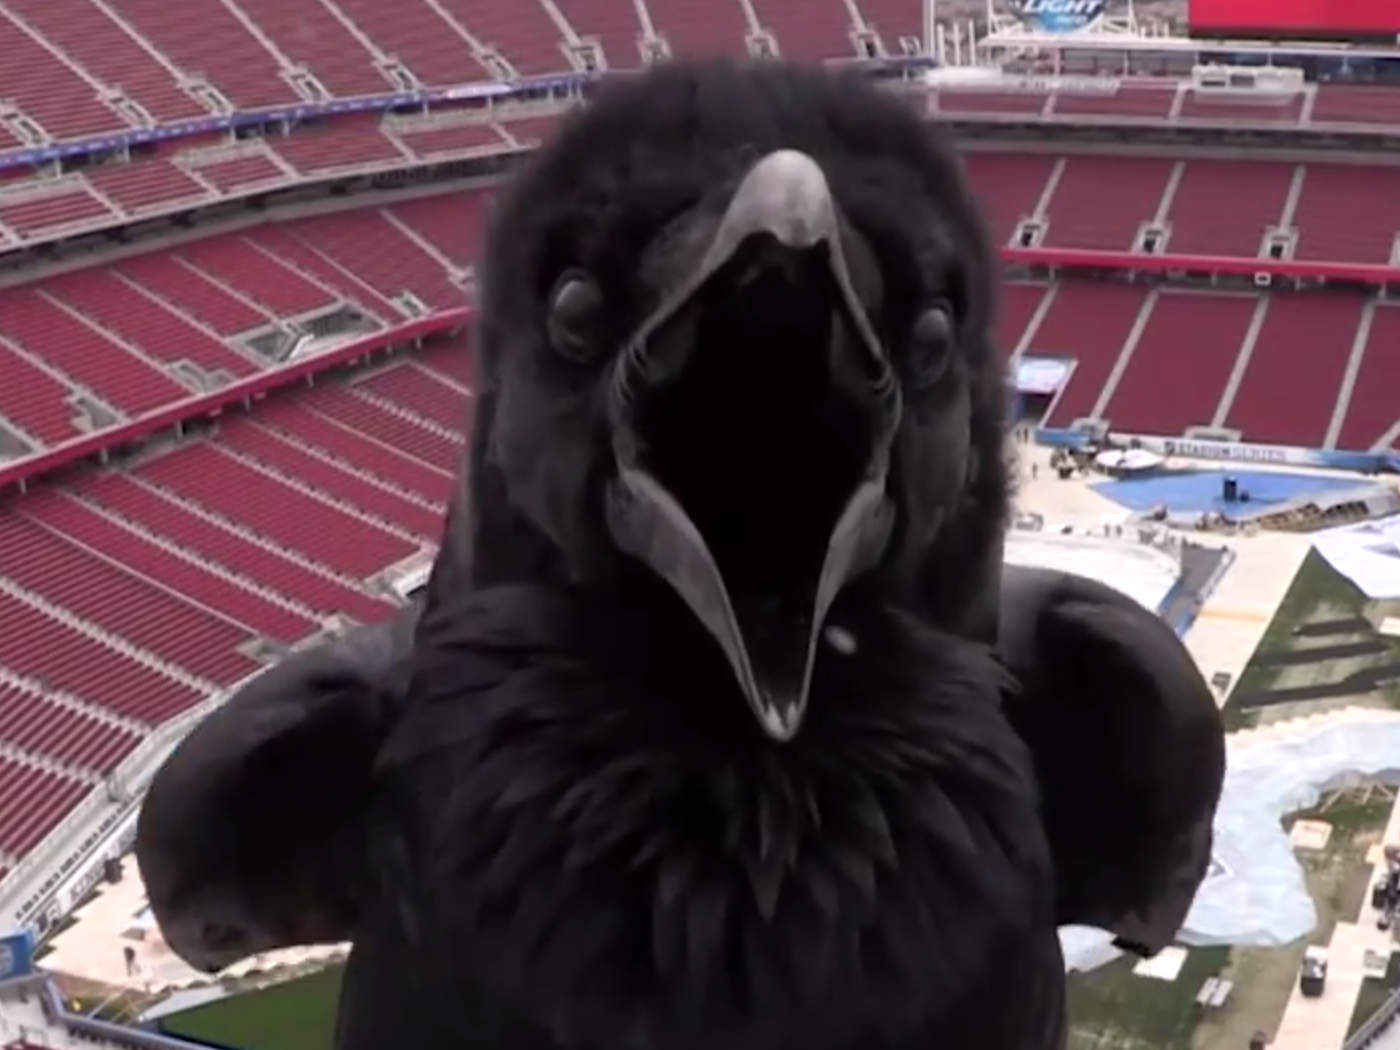 This raven videobombed a stadium webcam to terrify sports fans.